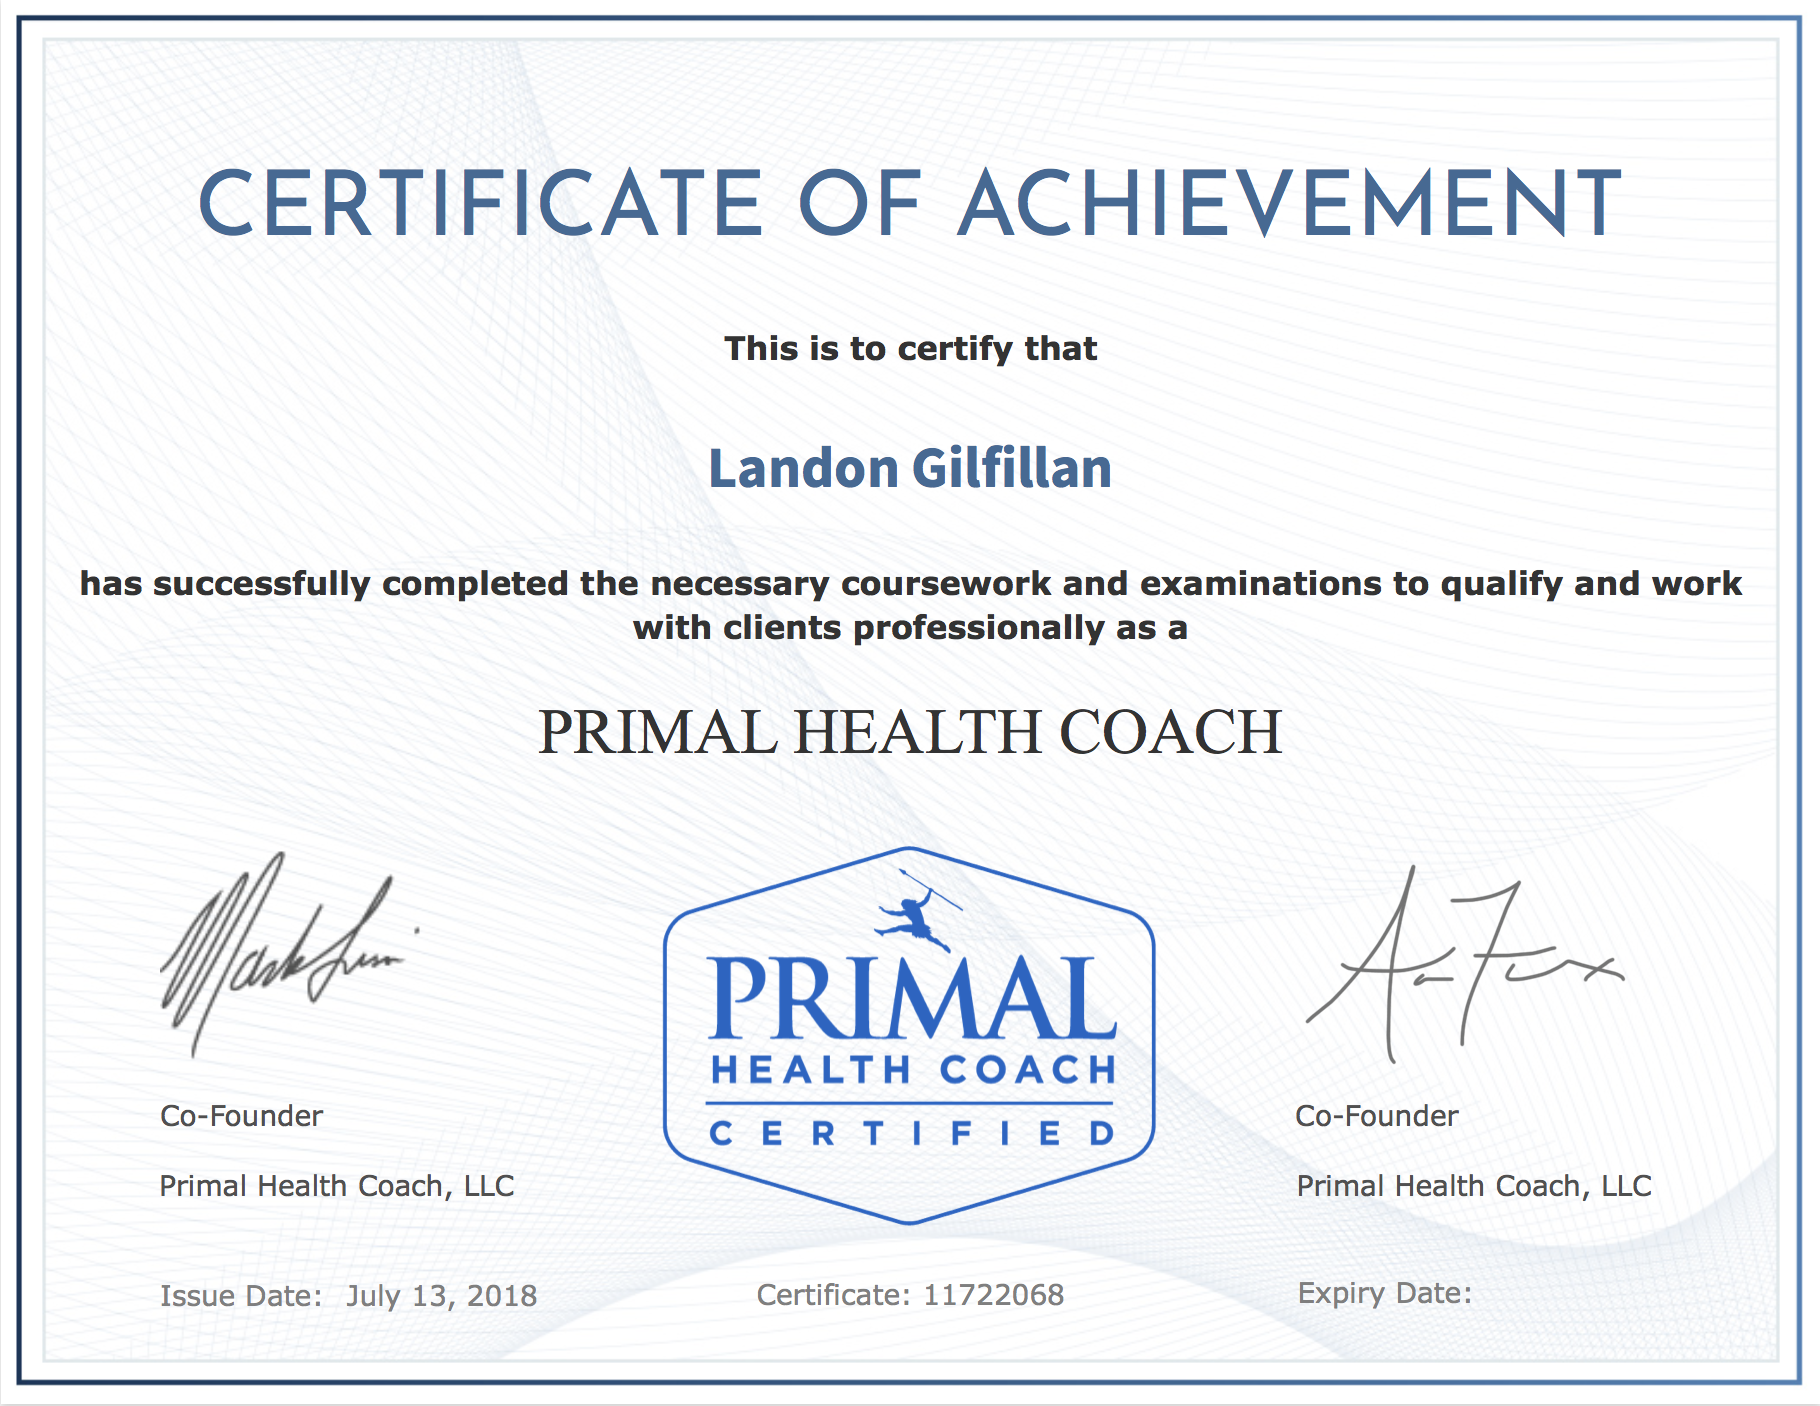 PrimalHealthCoachCertificate